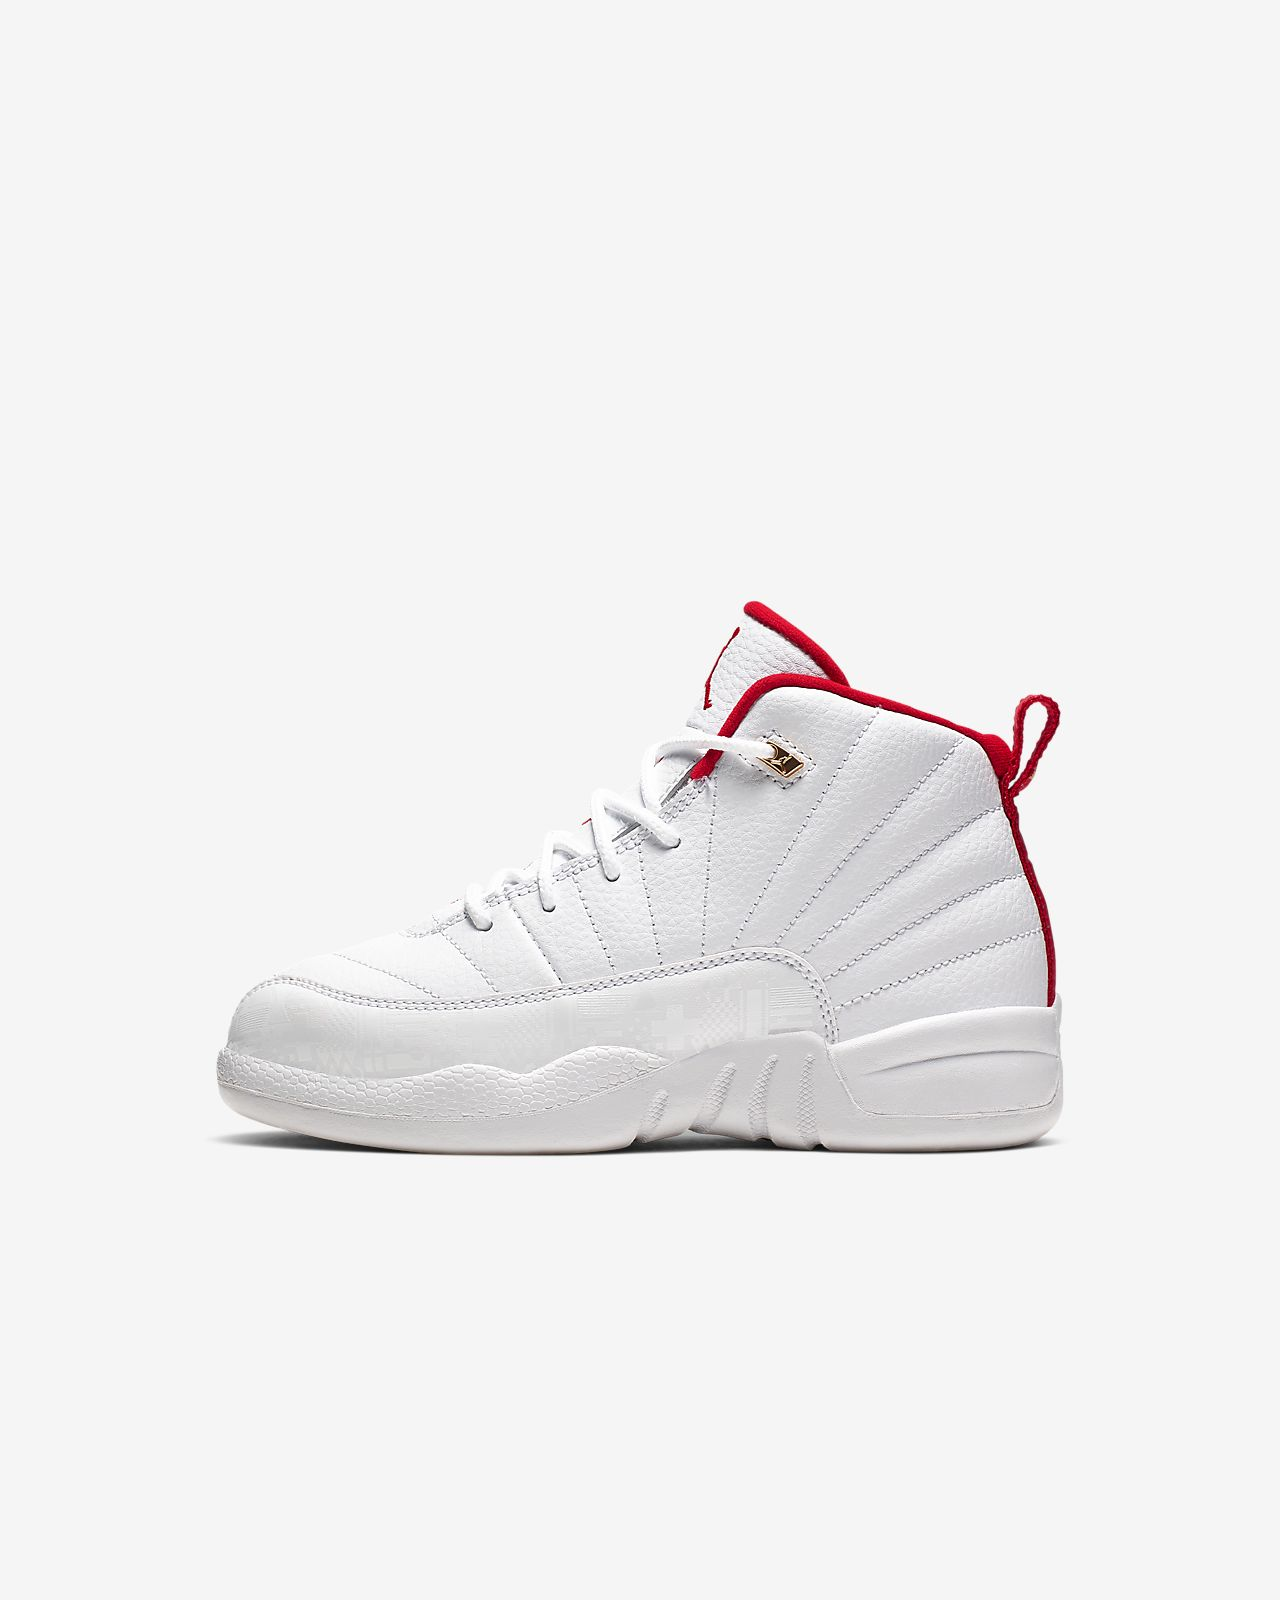 acb2f95eaf94f Air Jordan 12 Retro (10.5c-3y) Little Kids' Shoe